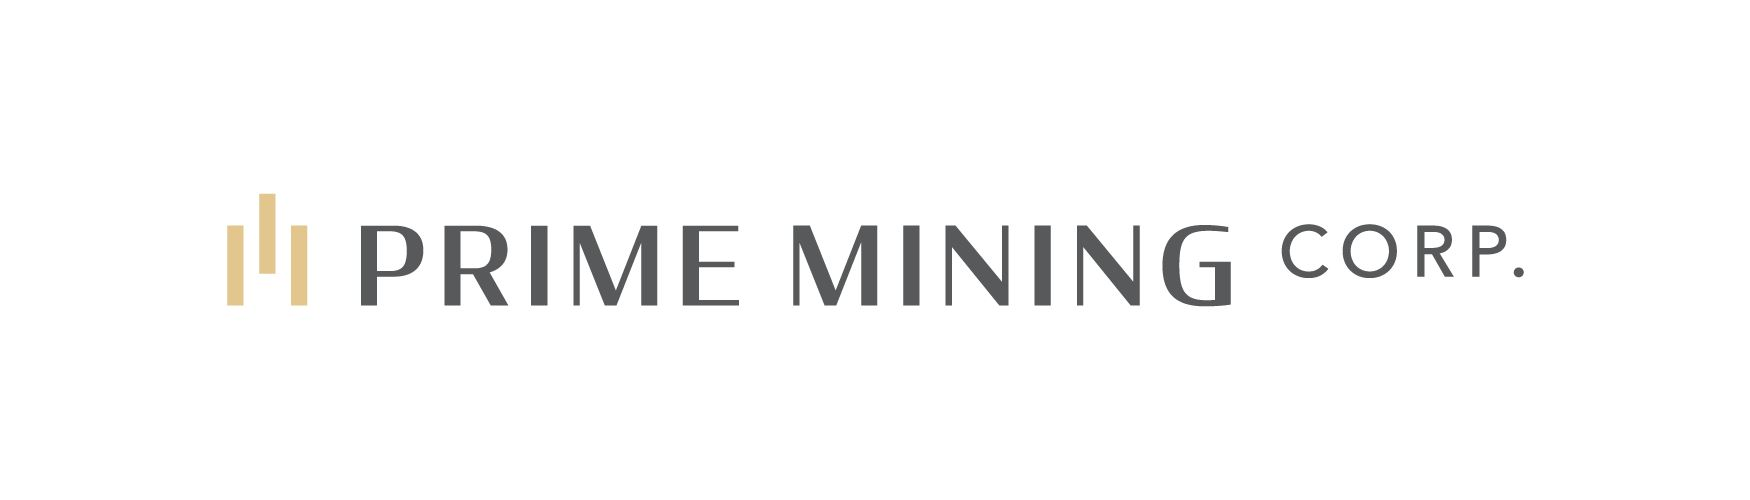 Prime Mining Extends Bonanza Grade Gold-Silver Mineralization 150 Metres Below Previous Drilling in Estaca Vein